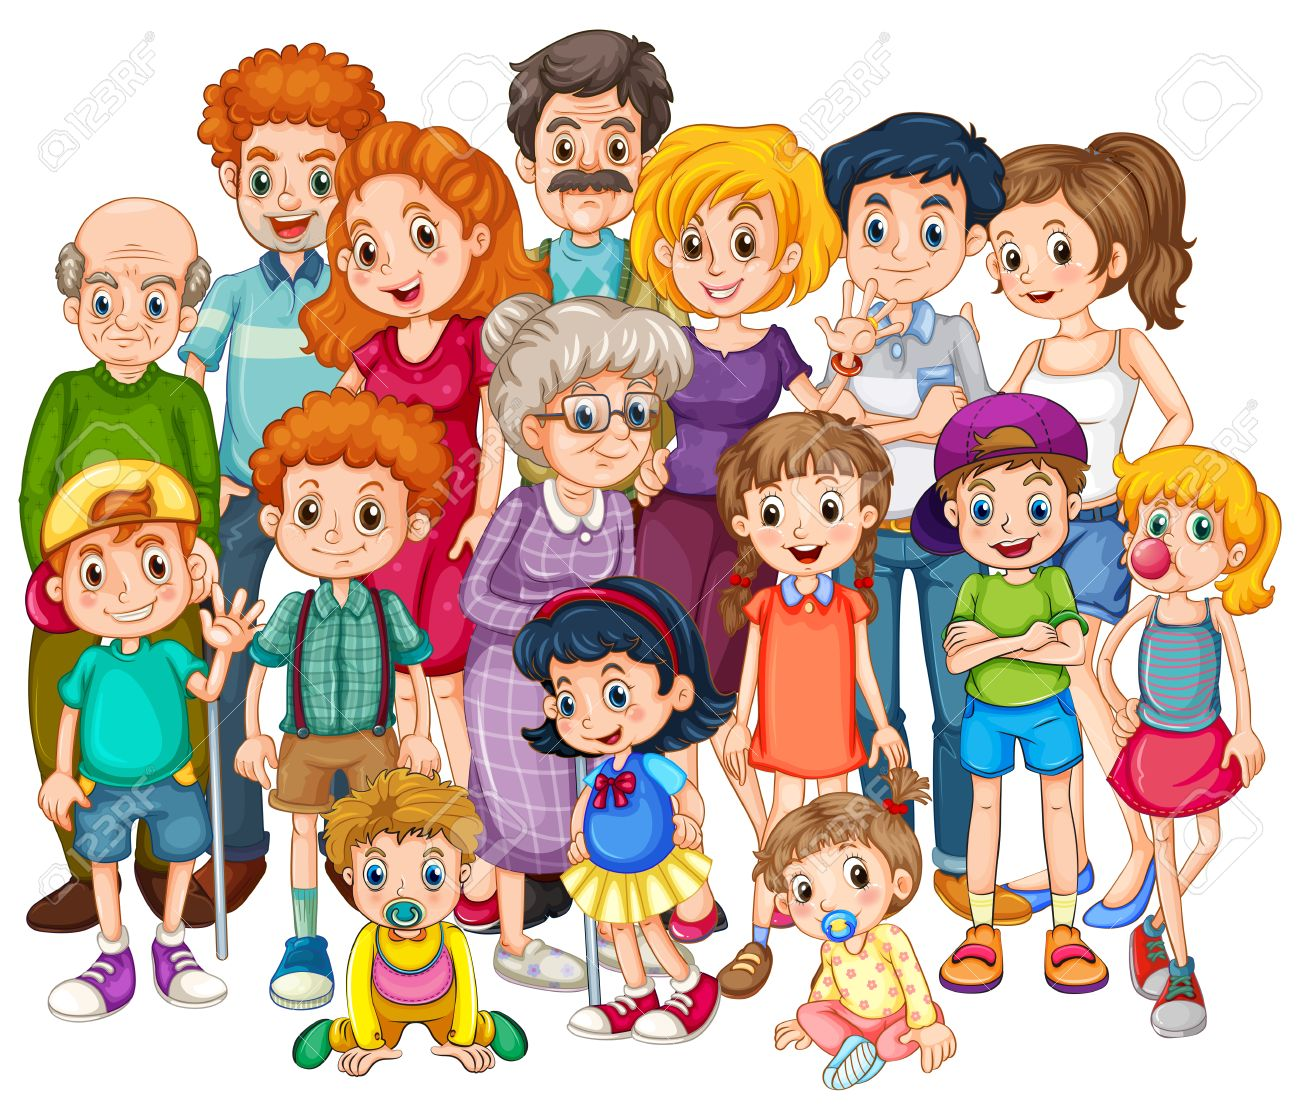 family members happy together in one shot royalty free cliparts rh 123rf com cartoon big family images cartoon family images download